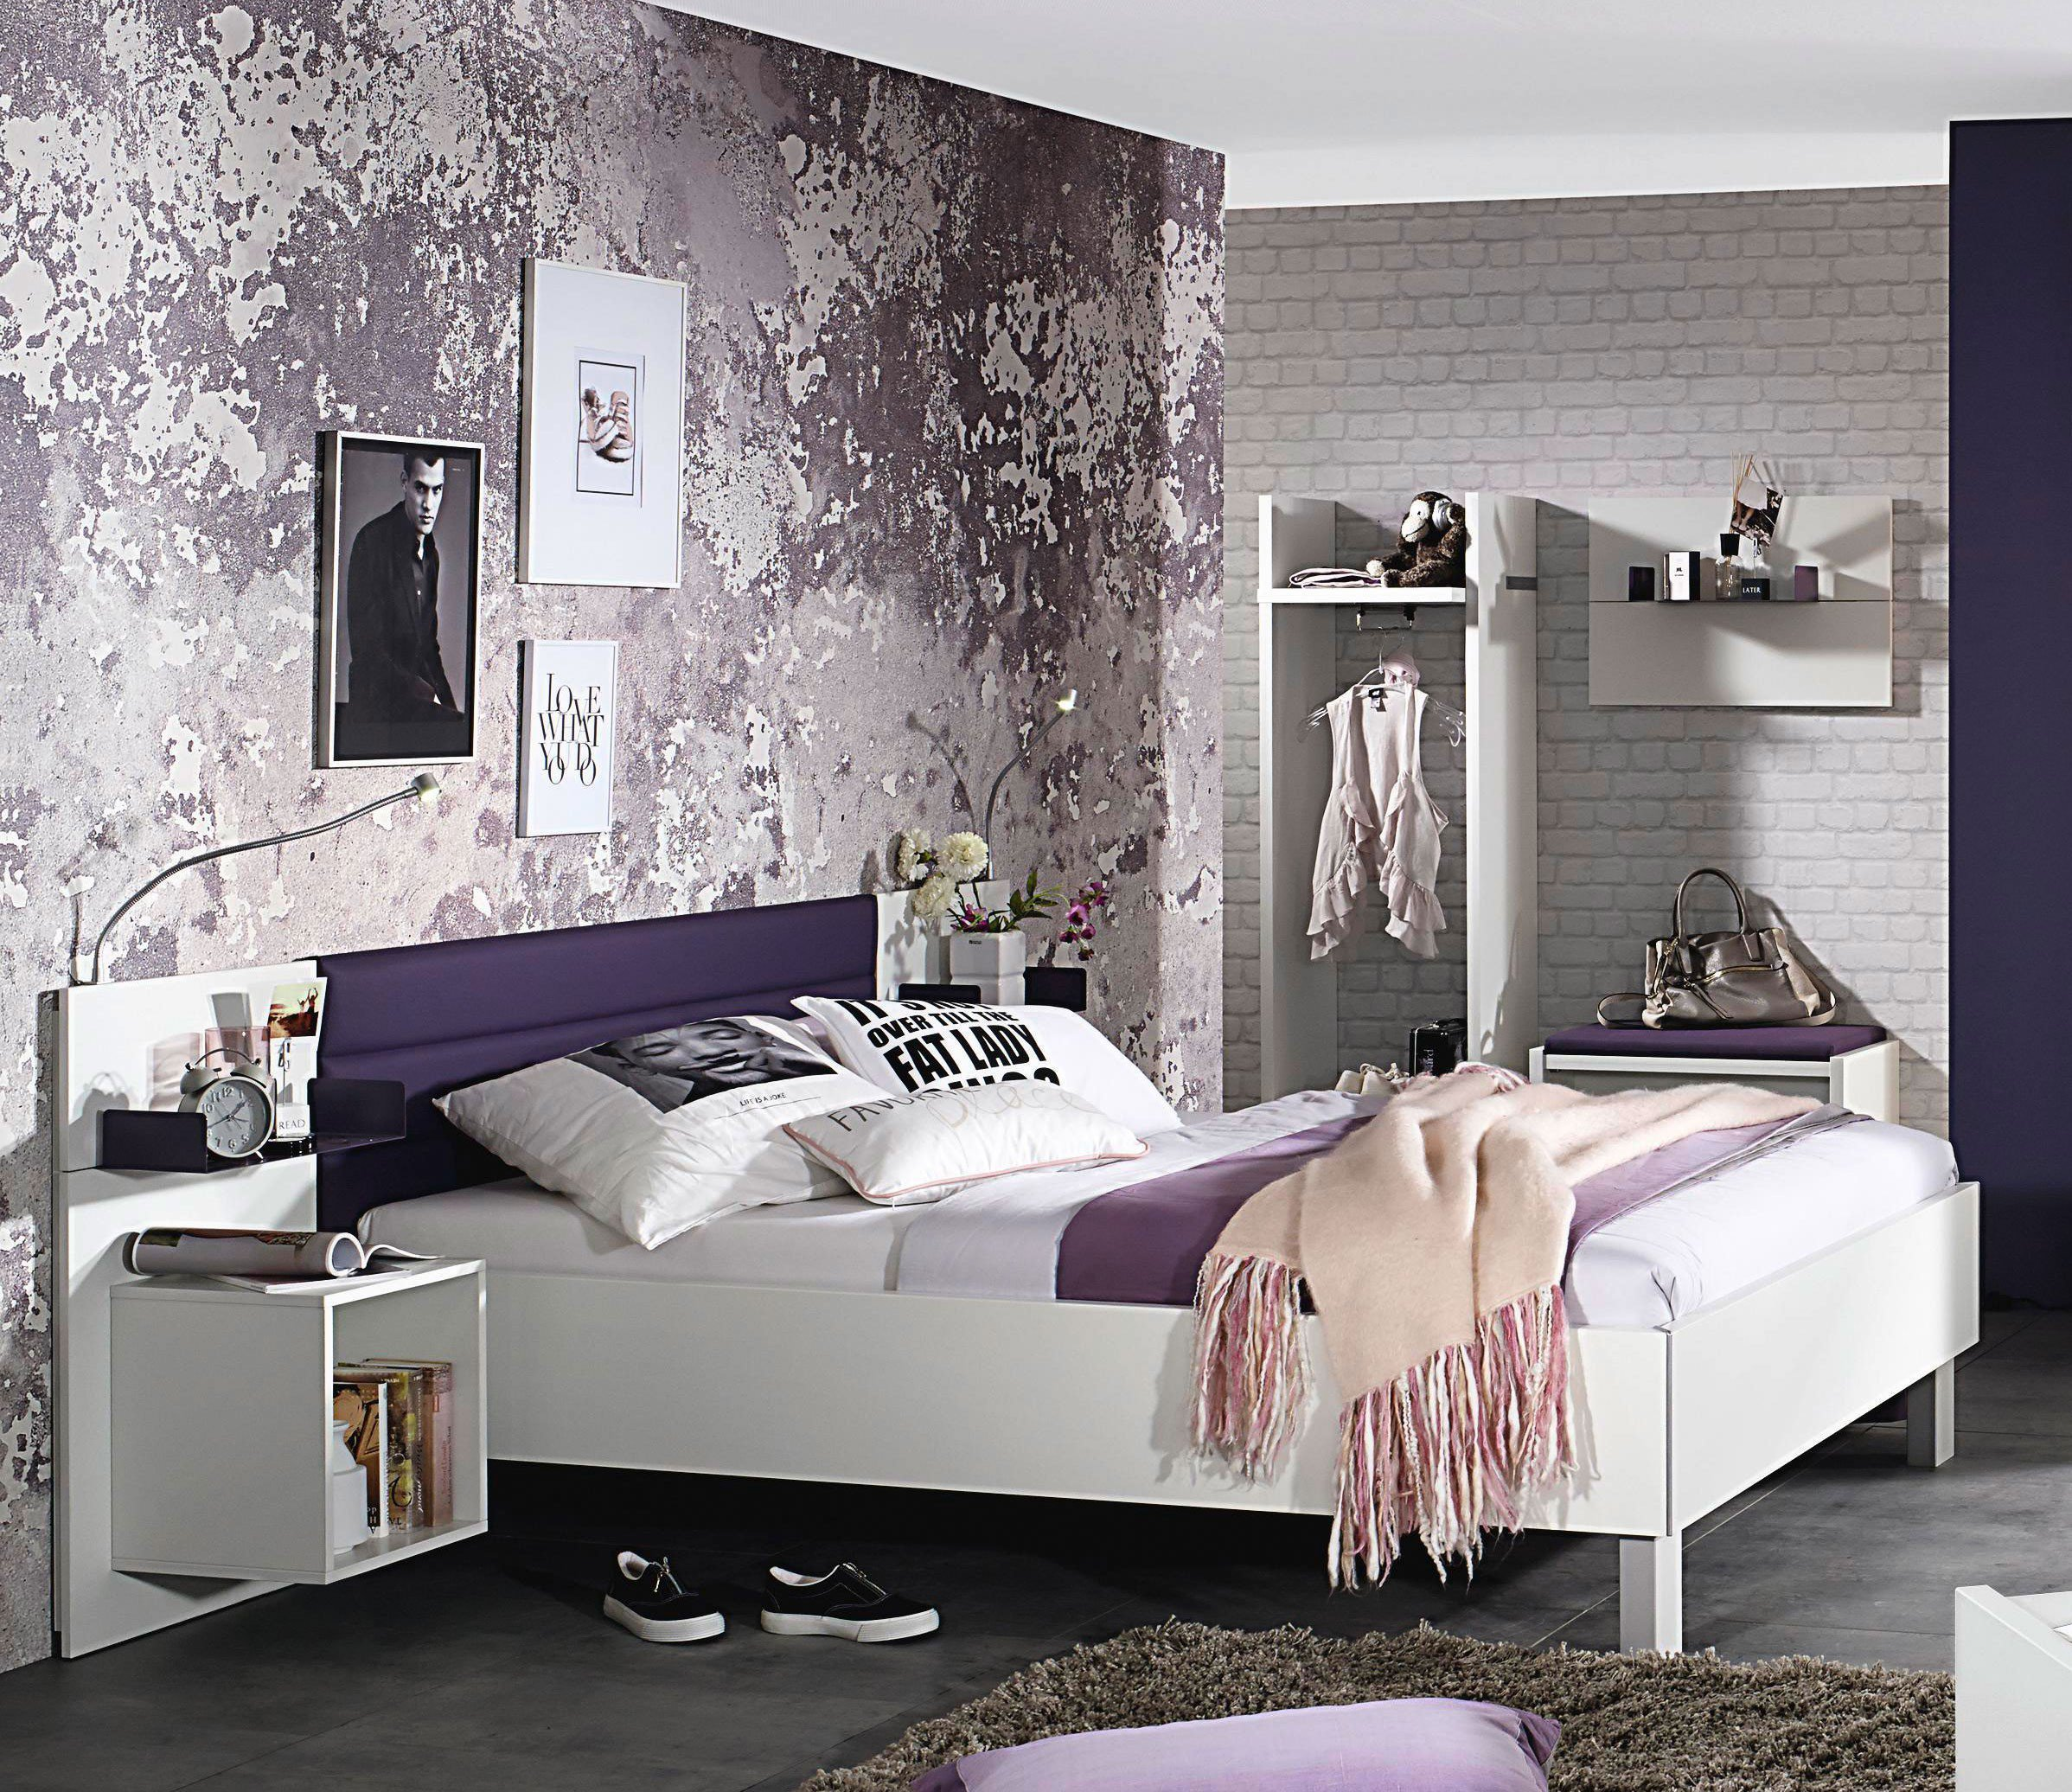 rauch nice4teens bett 140 x 200 cm graphit m bel letz ihr online shop. Black Bedroom Furniture Sets. Home Design Ideas